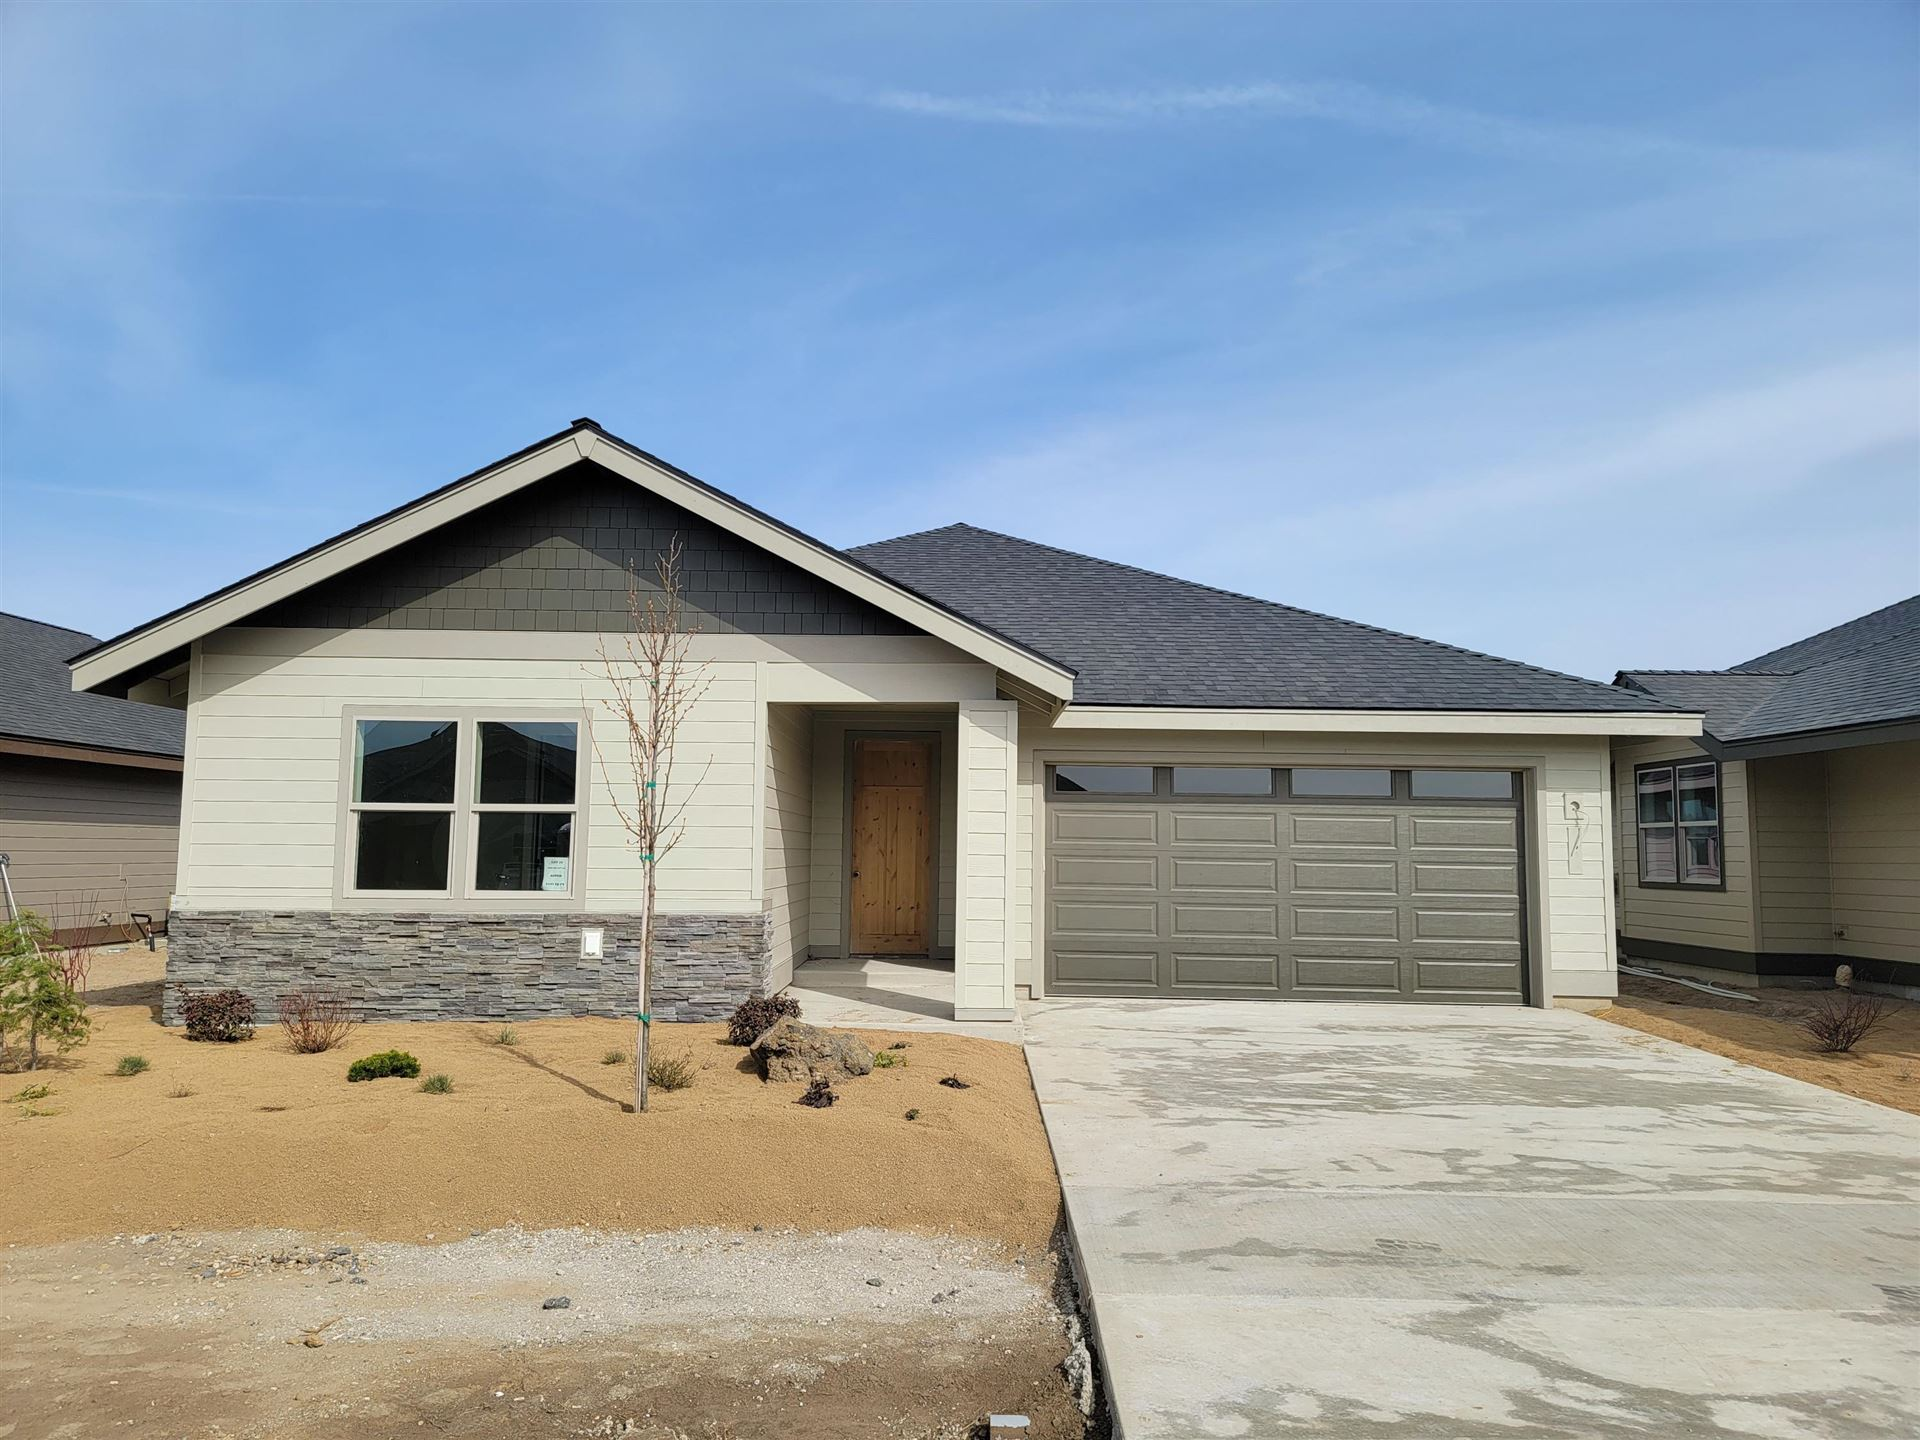 Photo of 29 NW 25th Street, Redmond, OR 97756 (MLS # 220101699)